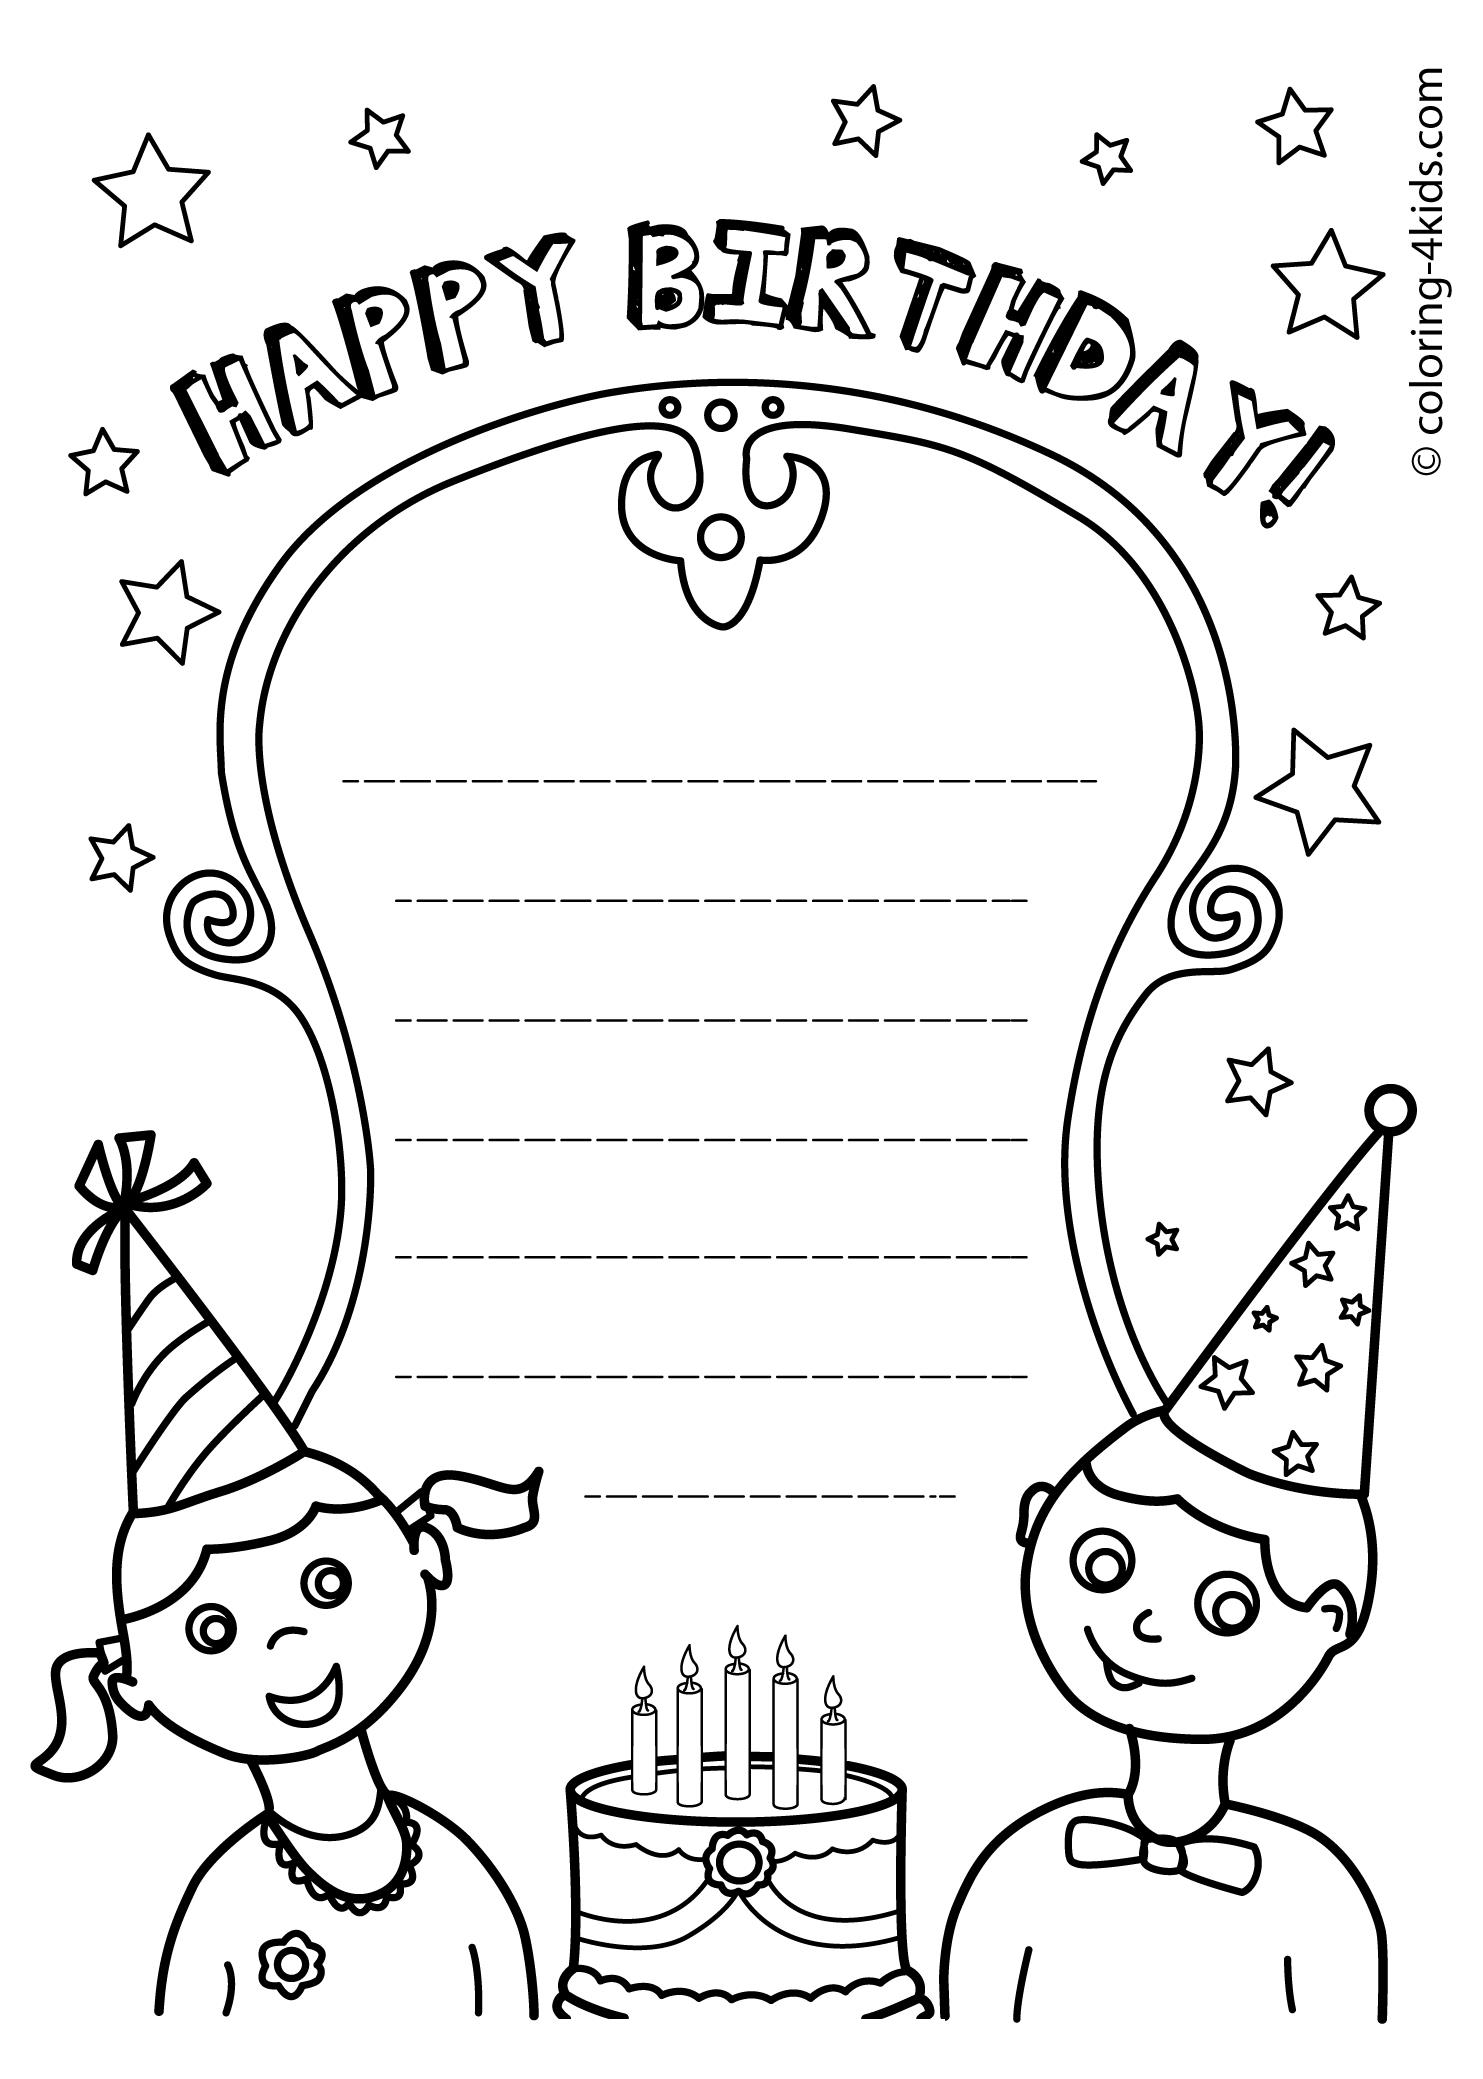 birthday coloring pages free printable ; bcaa54c36ee3038b8e0a420e72dfe3b7